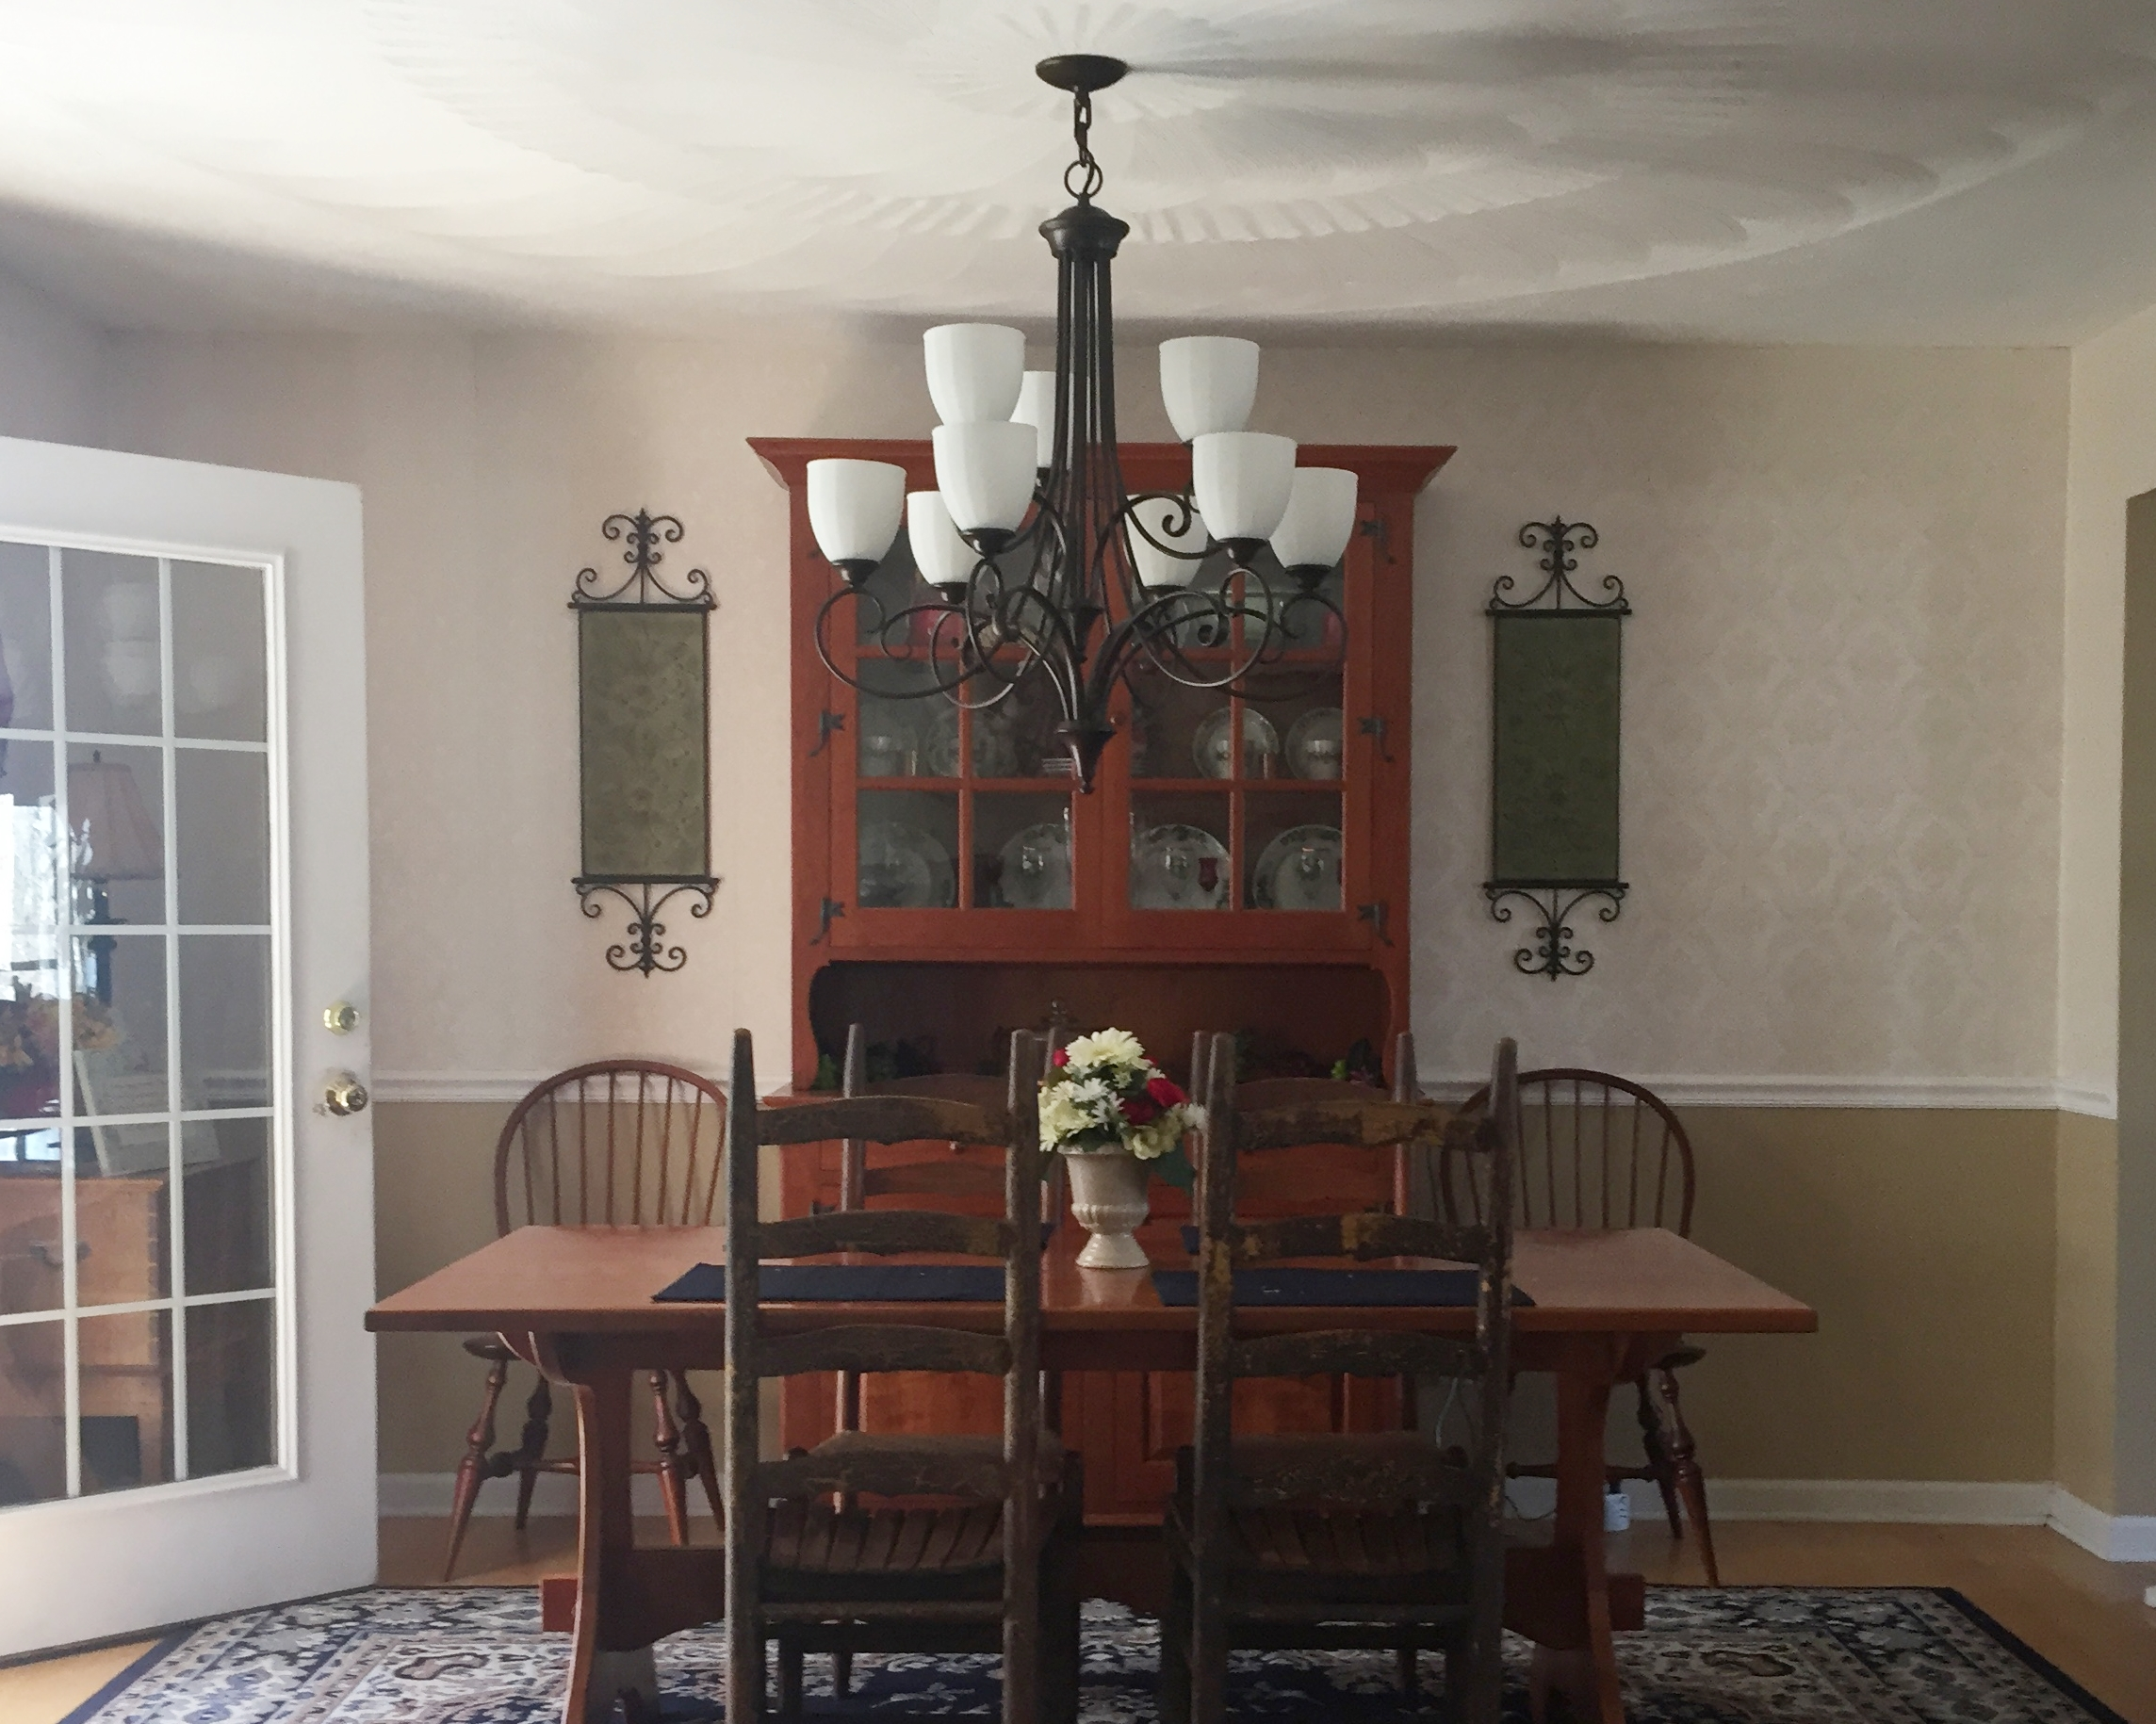 Casual Southern Charm in Penn Laird, VA